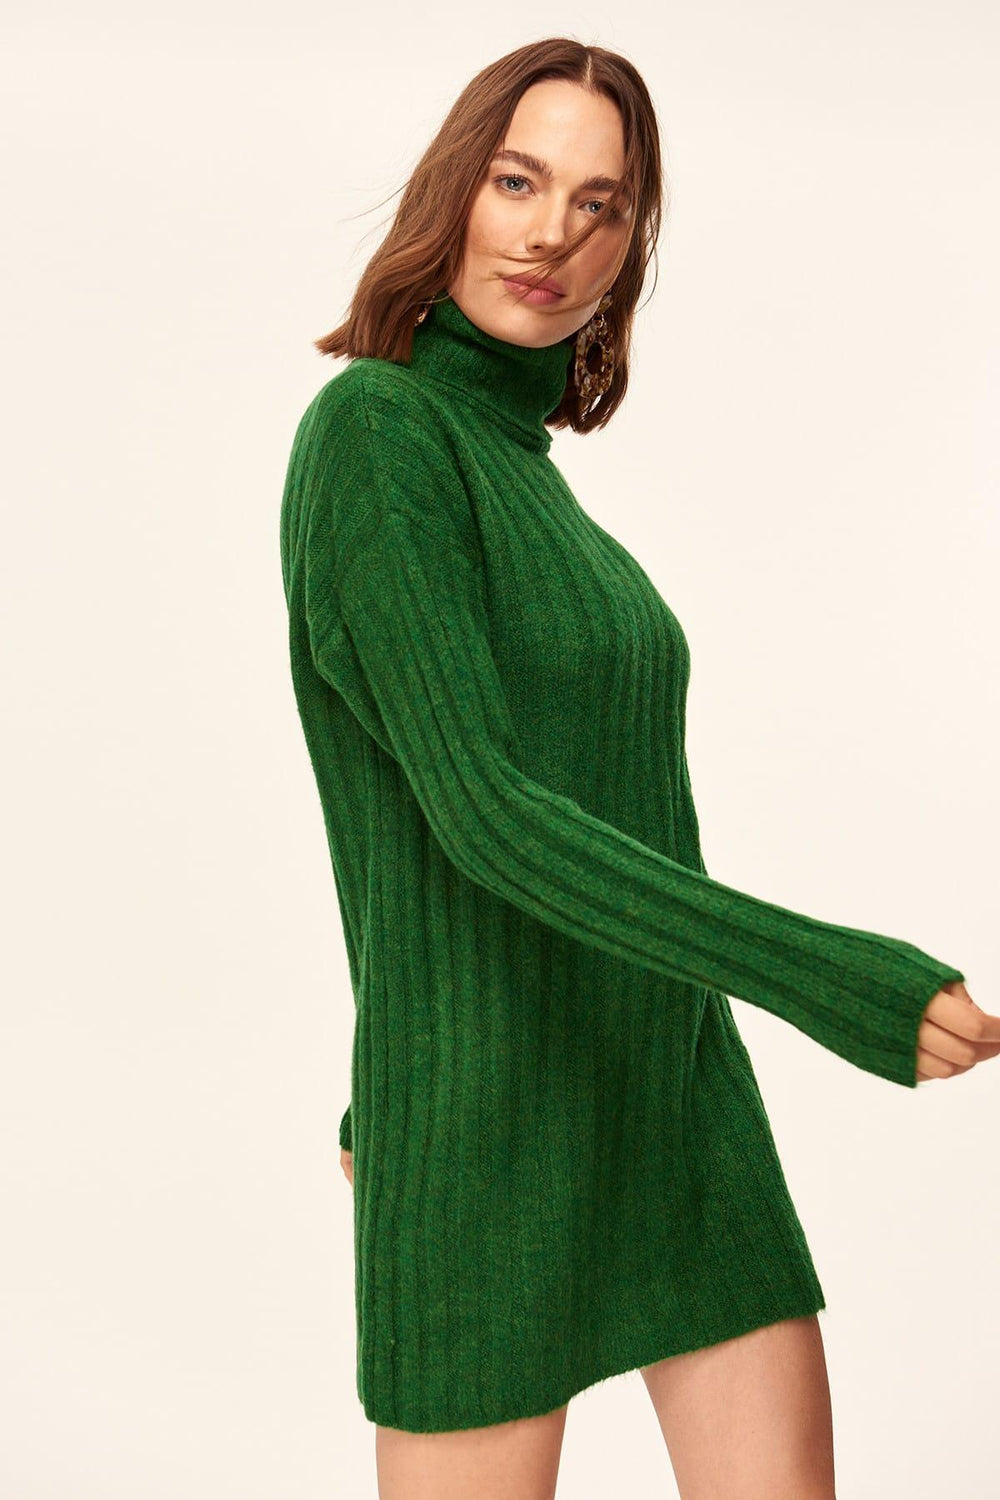 WOMEN-Green Turtleneck Sweater - Top Maxy